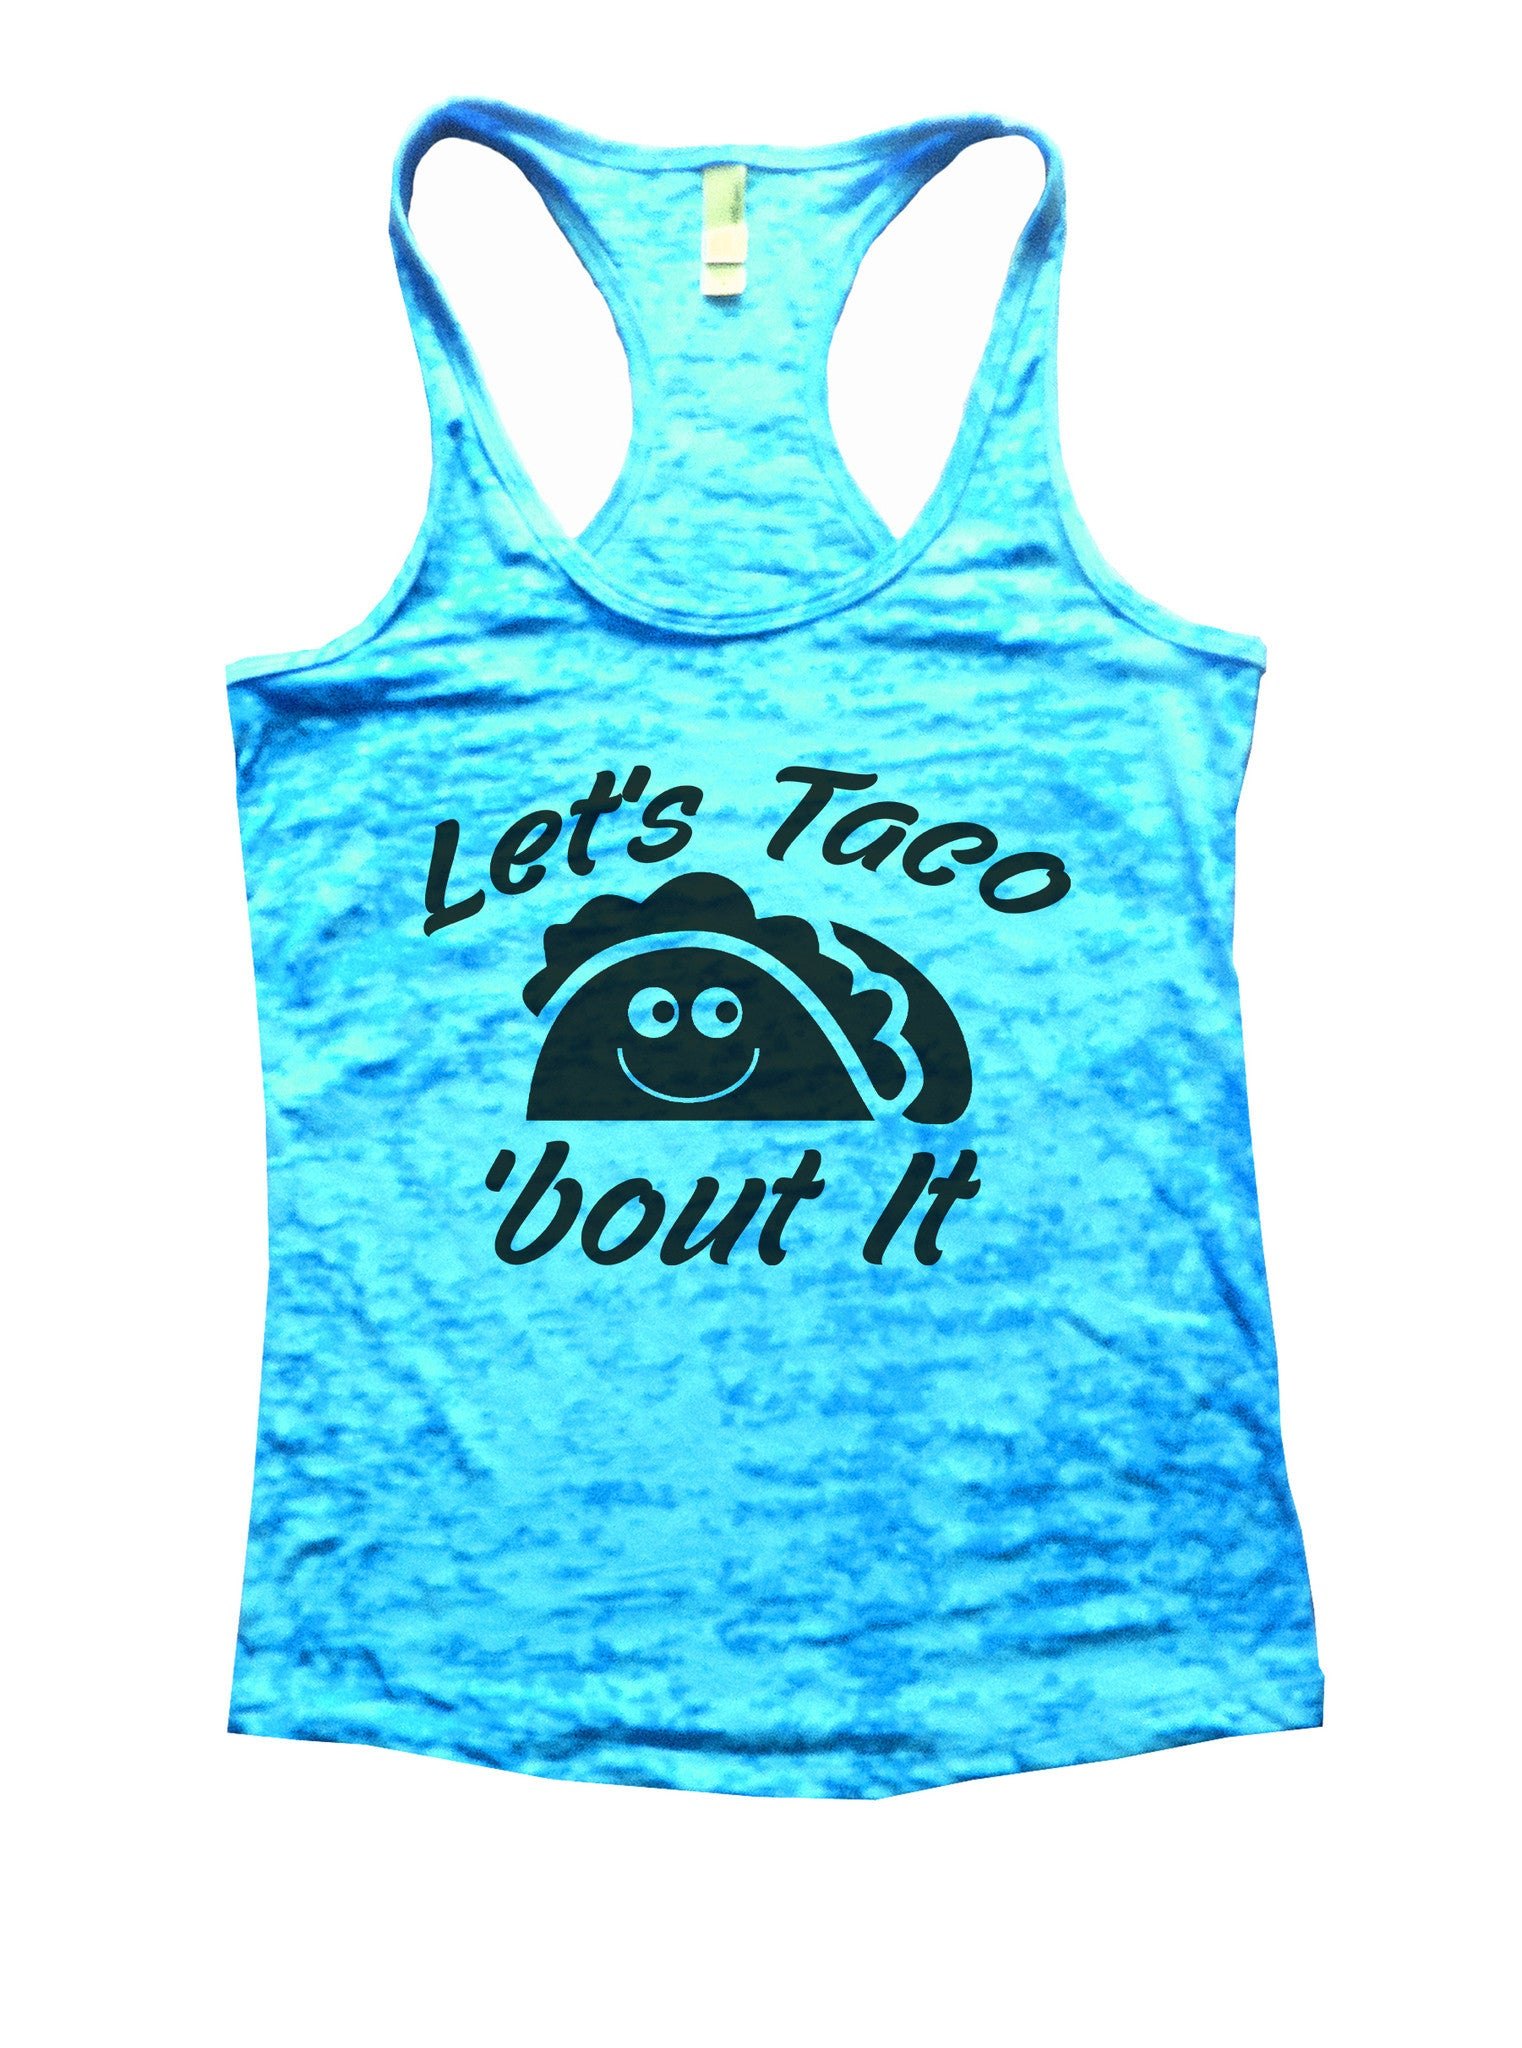 Let's Taco 'Bout It Burnout Tank Top By BurnoutTankTops.com - B860 - Funny Shirts Tank Tops Burnouts and Triblends  - 4